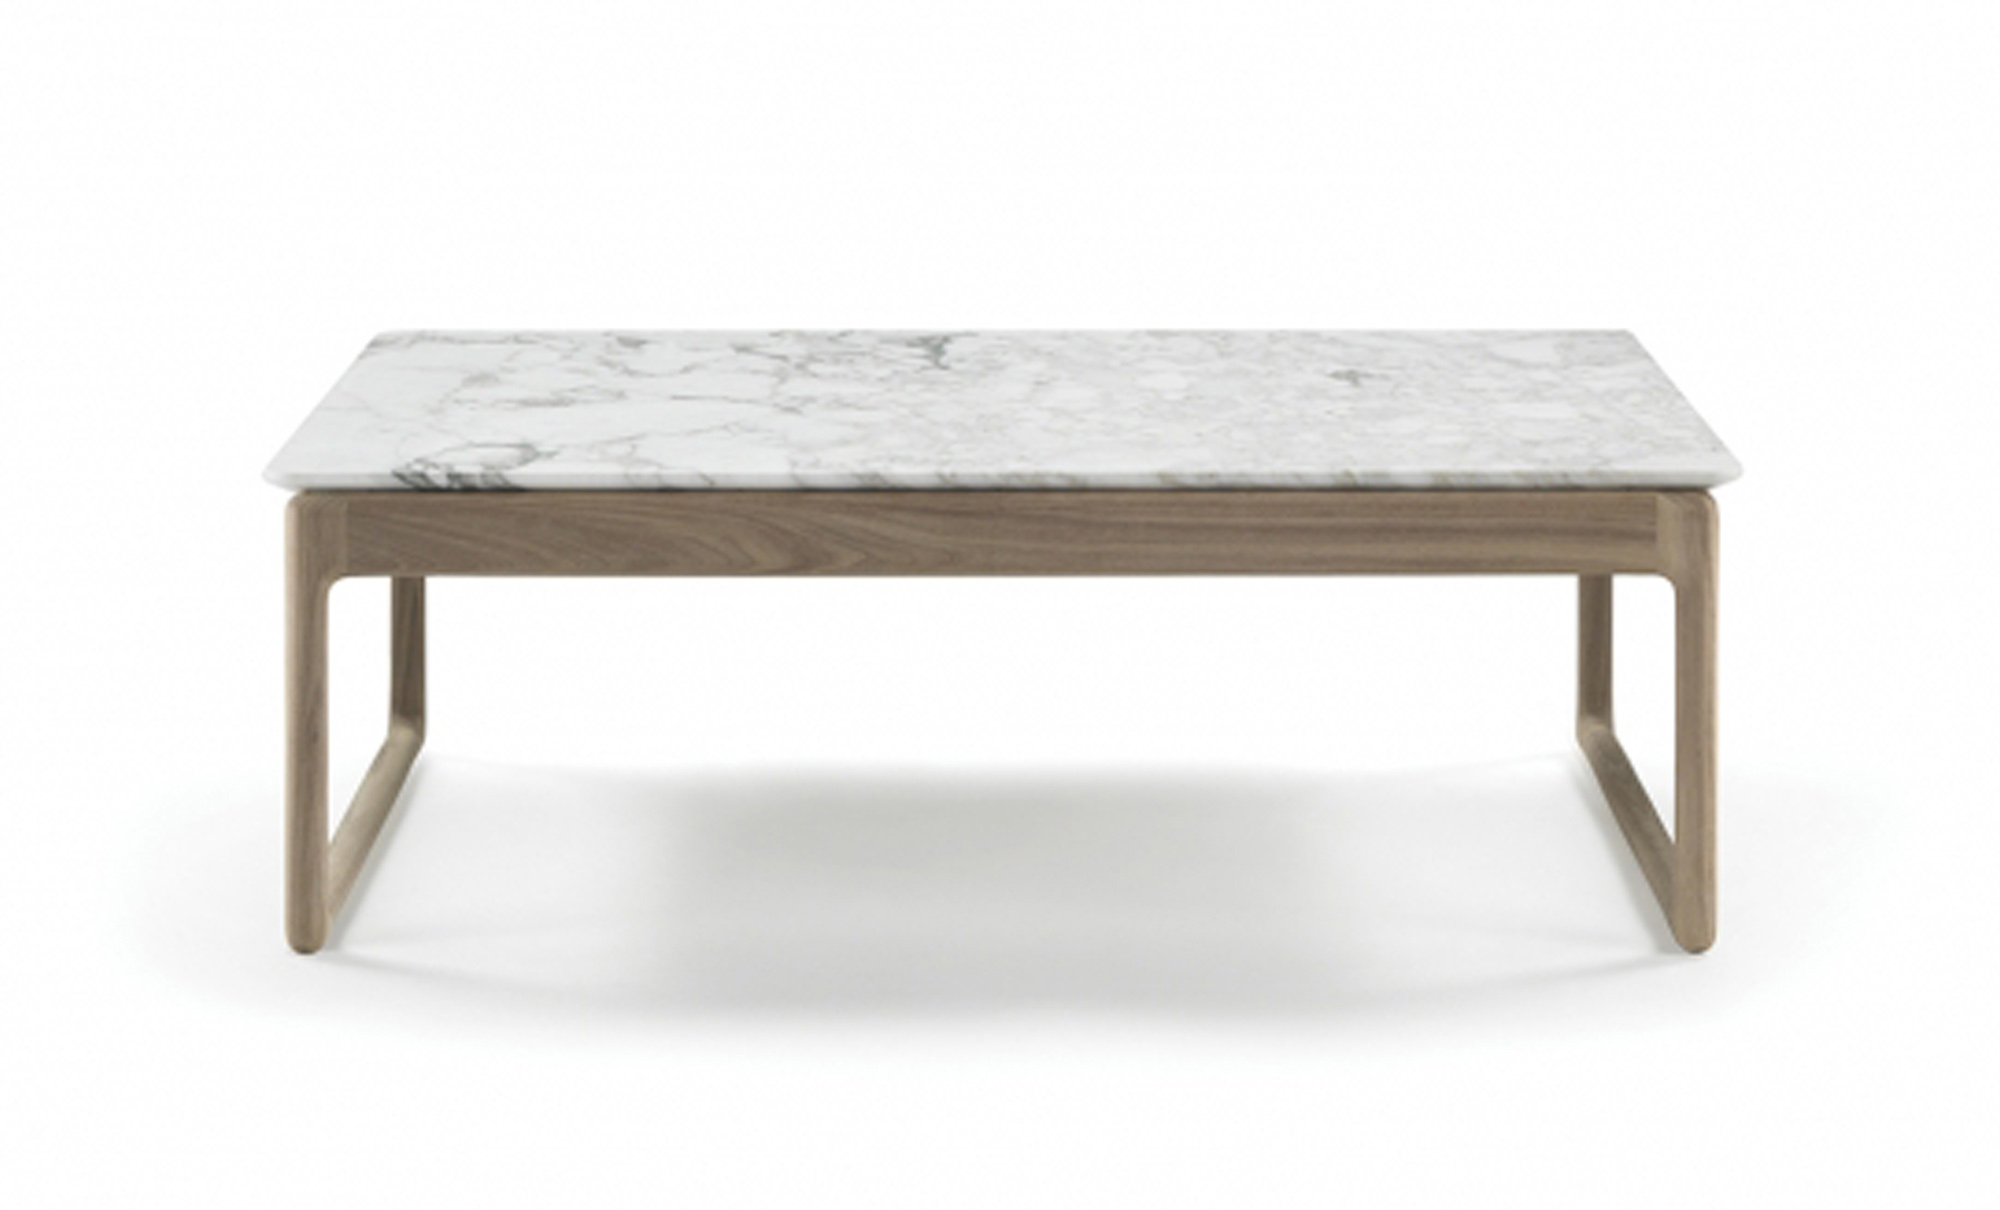 Designer Coffee Tables Sydney & Melbourne Fanuli Furniture